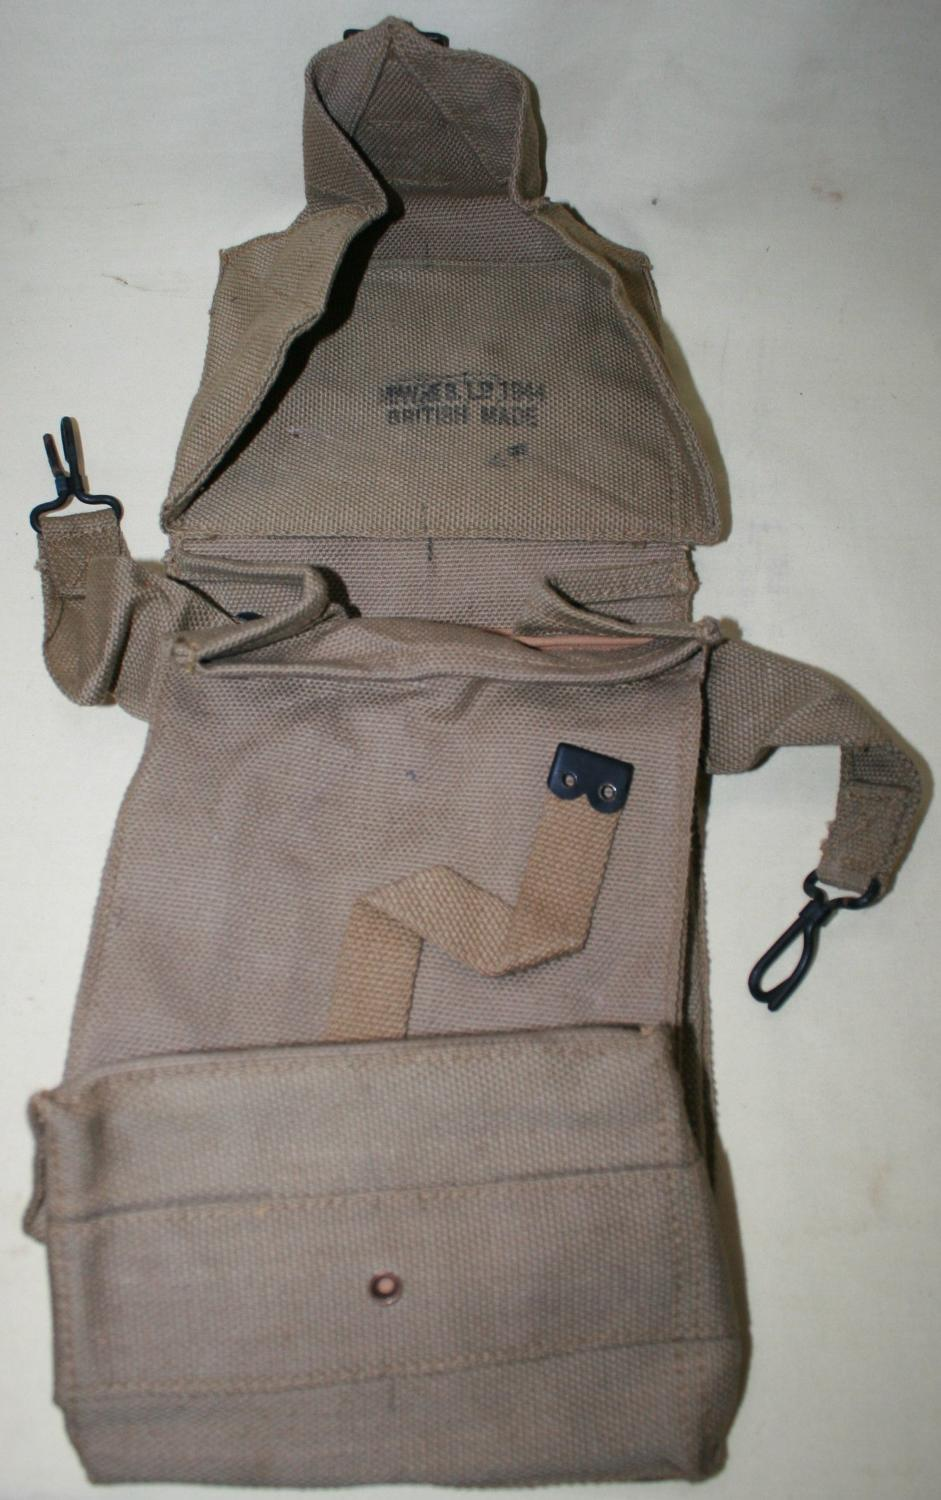 A WWII us ( BRITISH MADE ) BAG GENERAL PURPOSE 1944